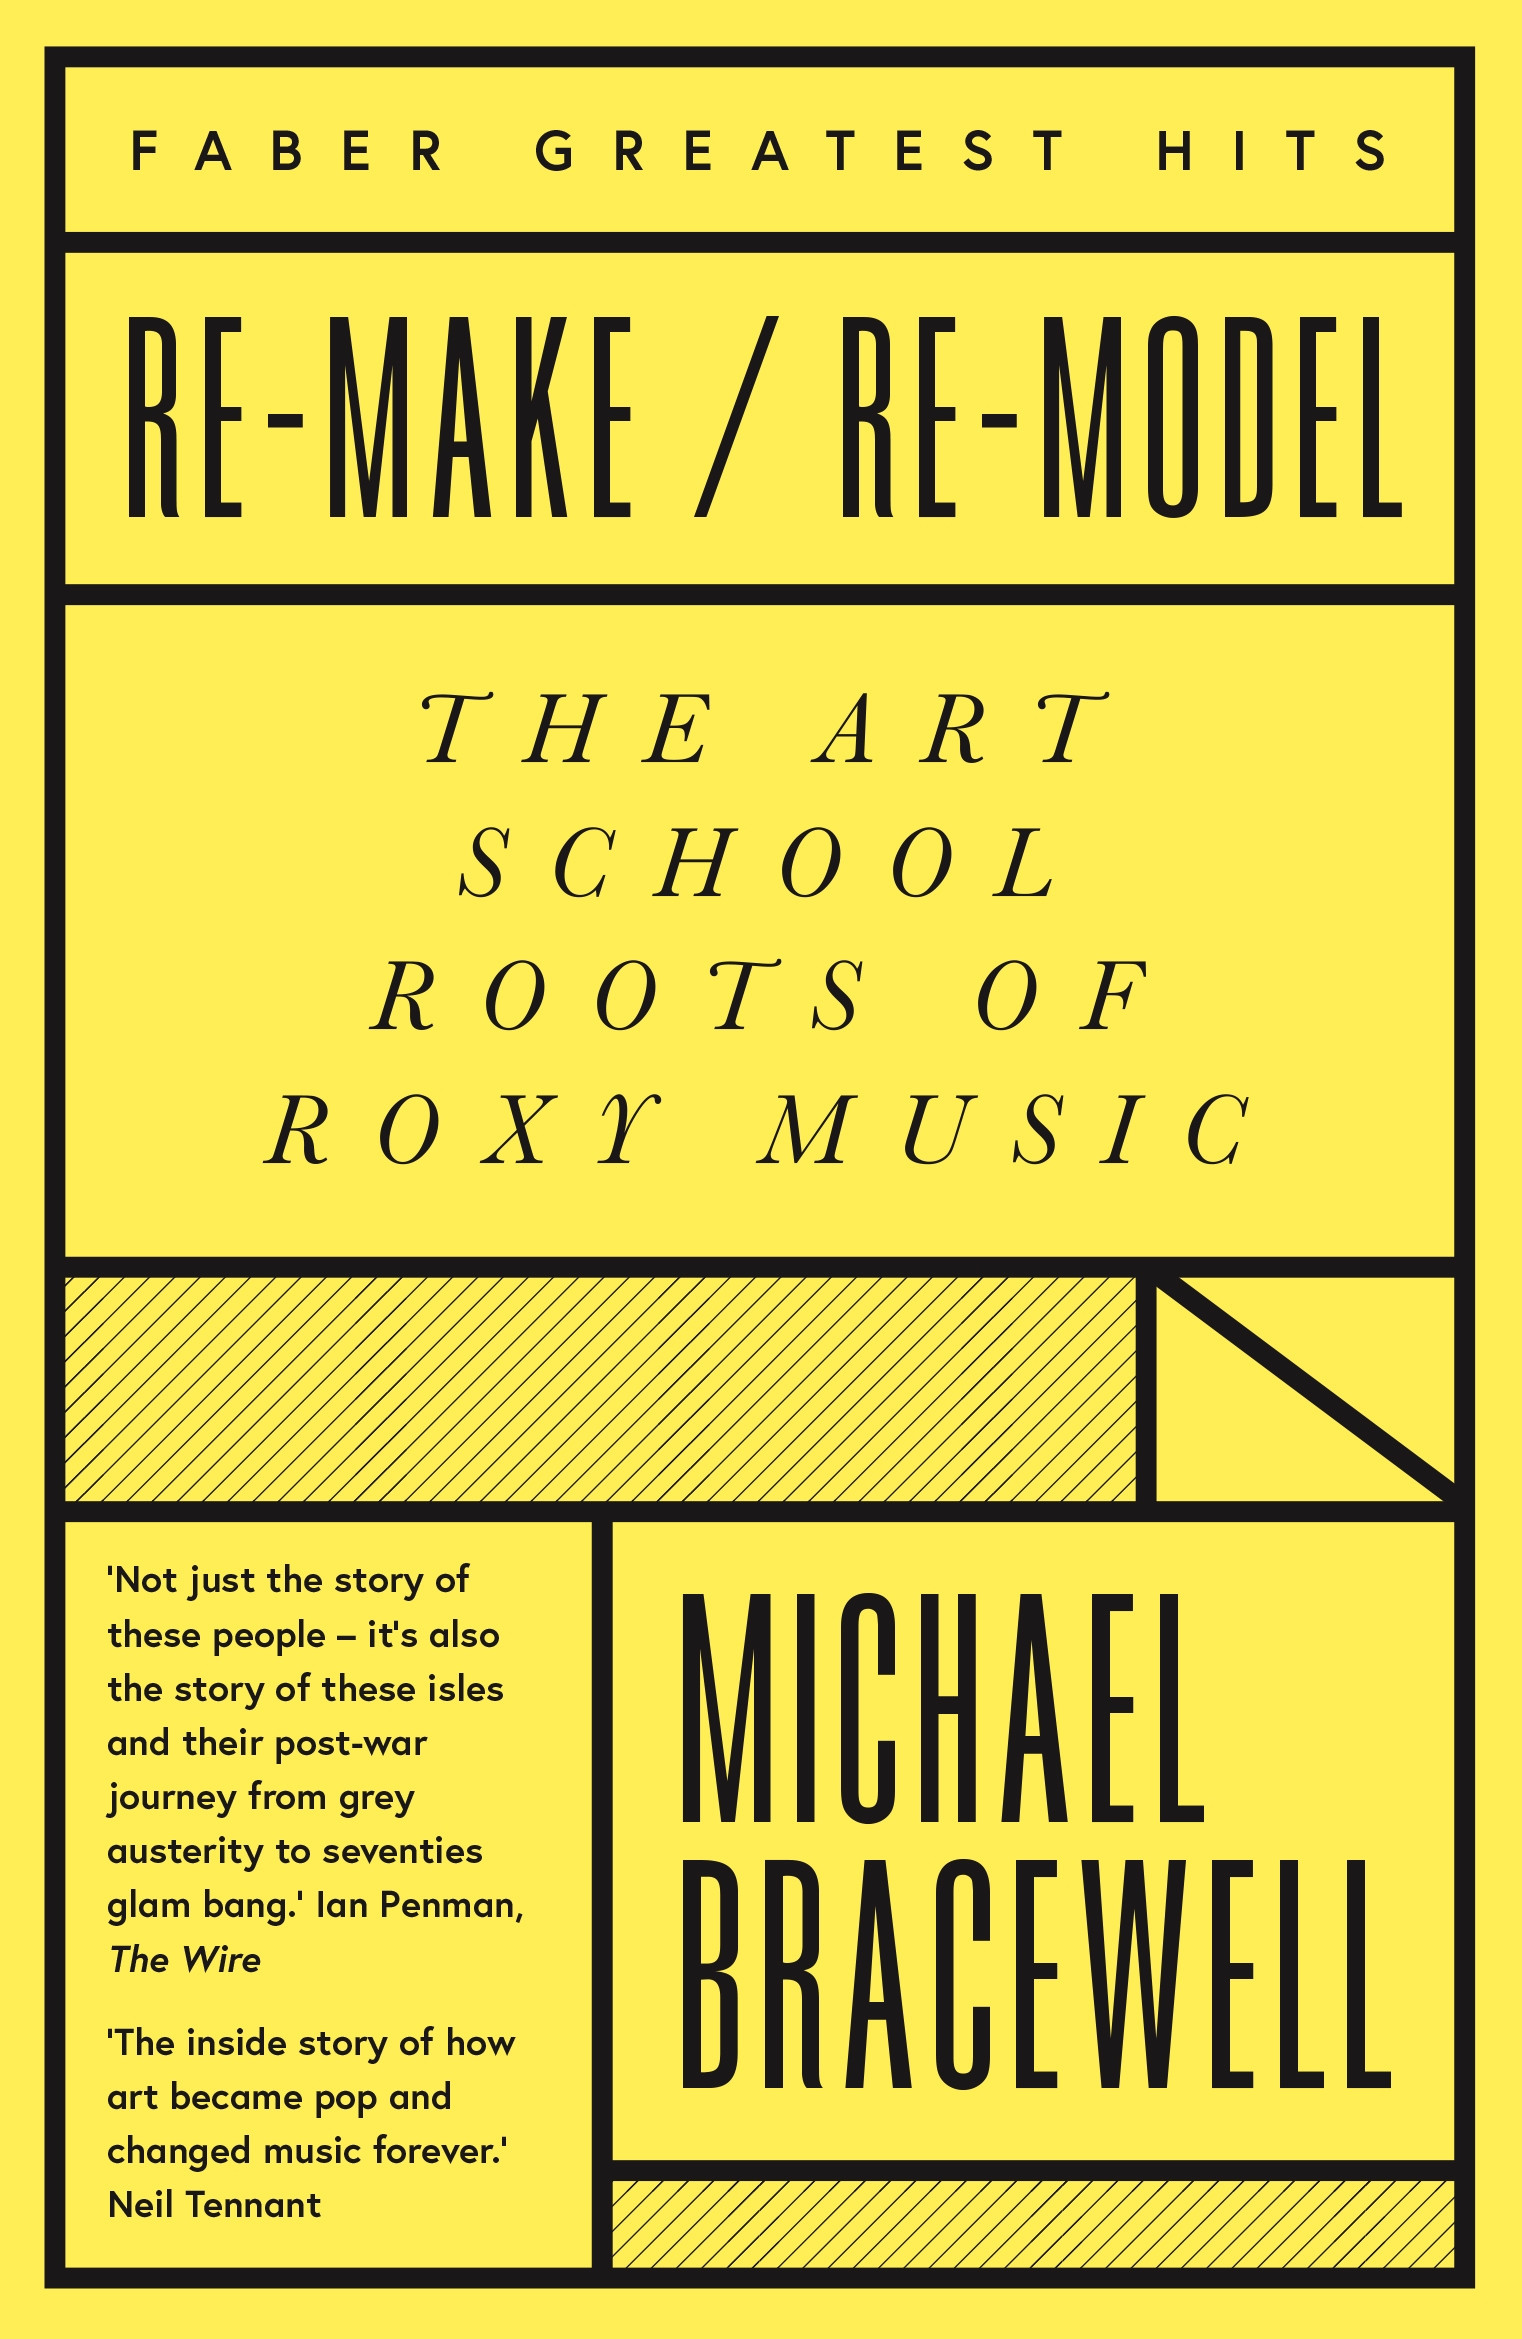 Michael Bracewell – Remake/Remodel: The Art School Roots Of Roxy Music